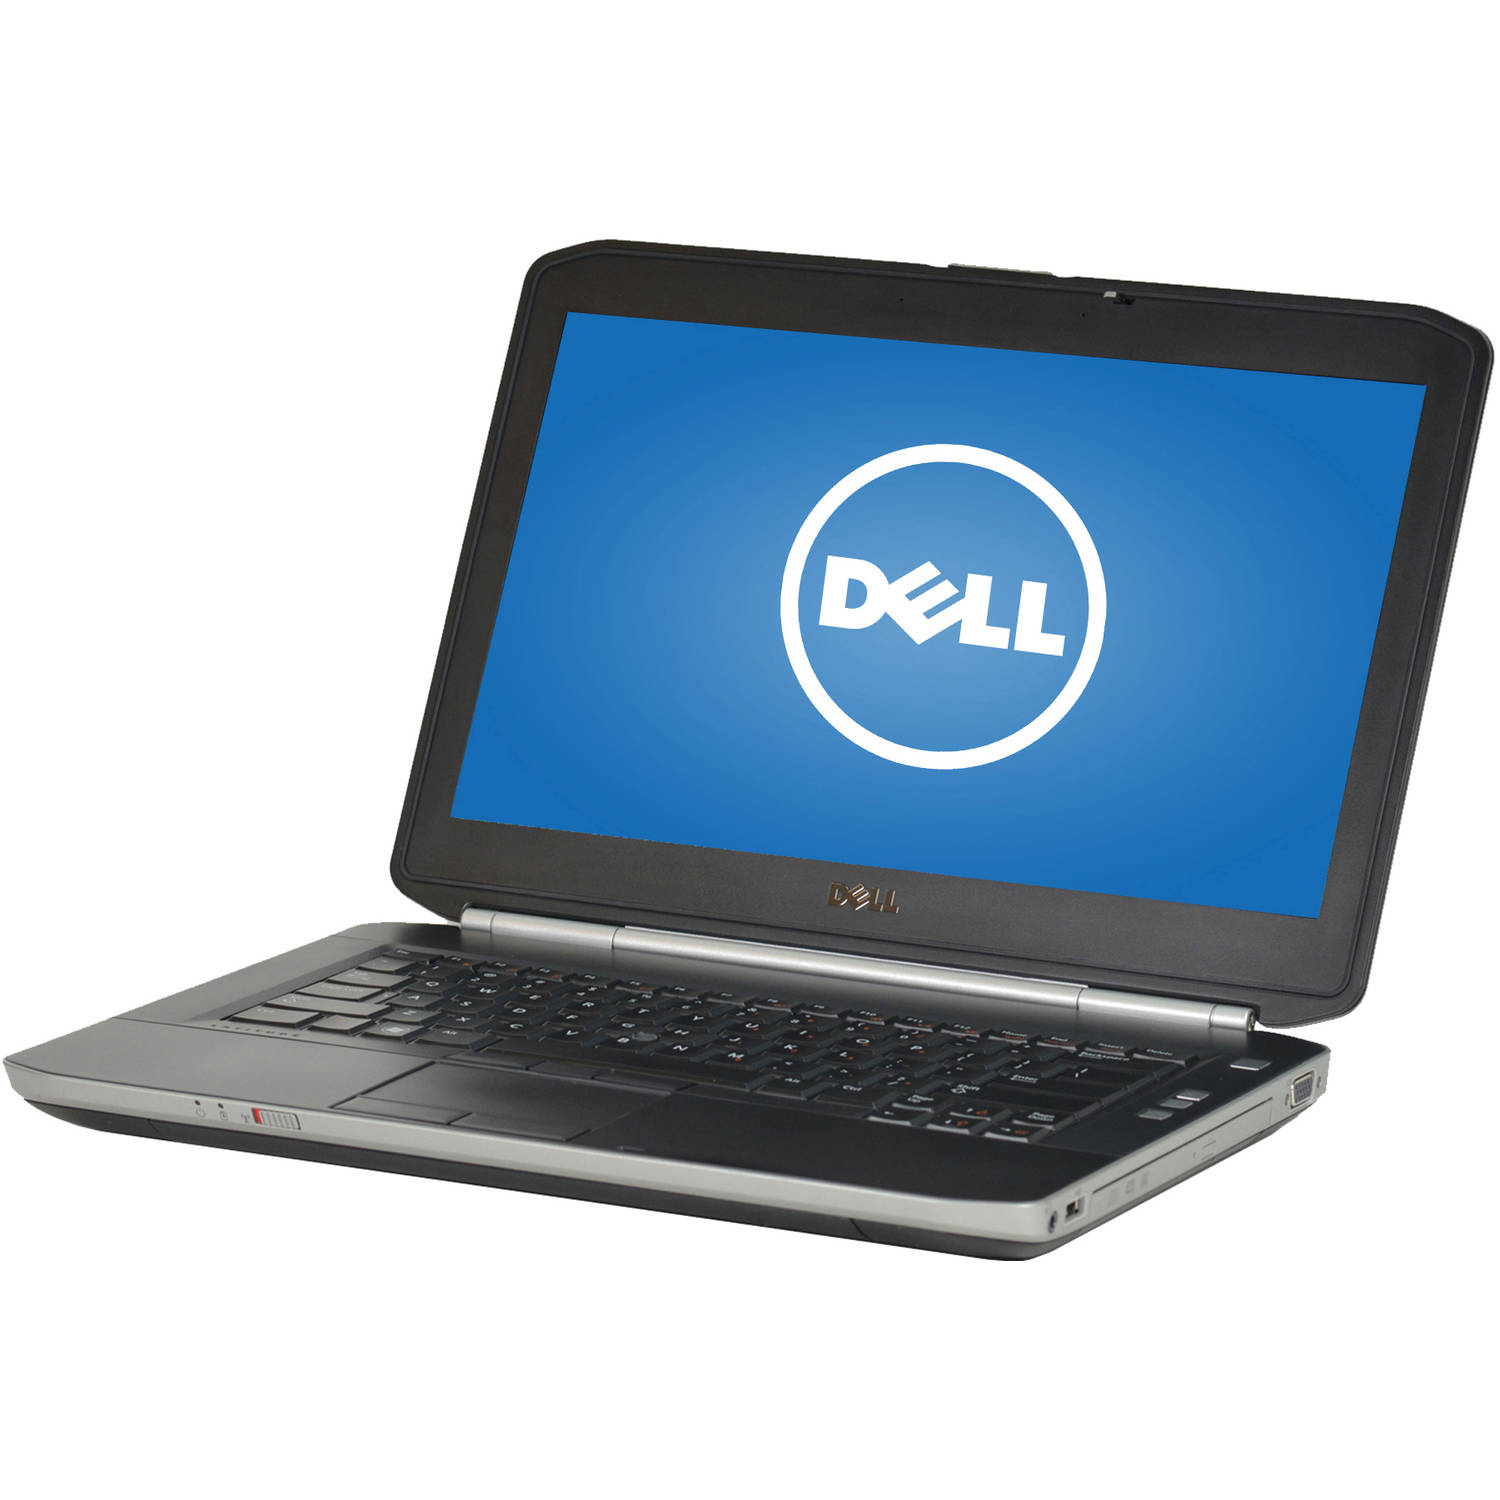 "Refurbished Dell 14"" Latitude E5420 Laptop PC with Intel Core i3 Processor, 4GB Memory, 500GB Hard Drive and Windows 10 Pro"